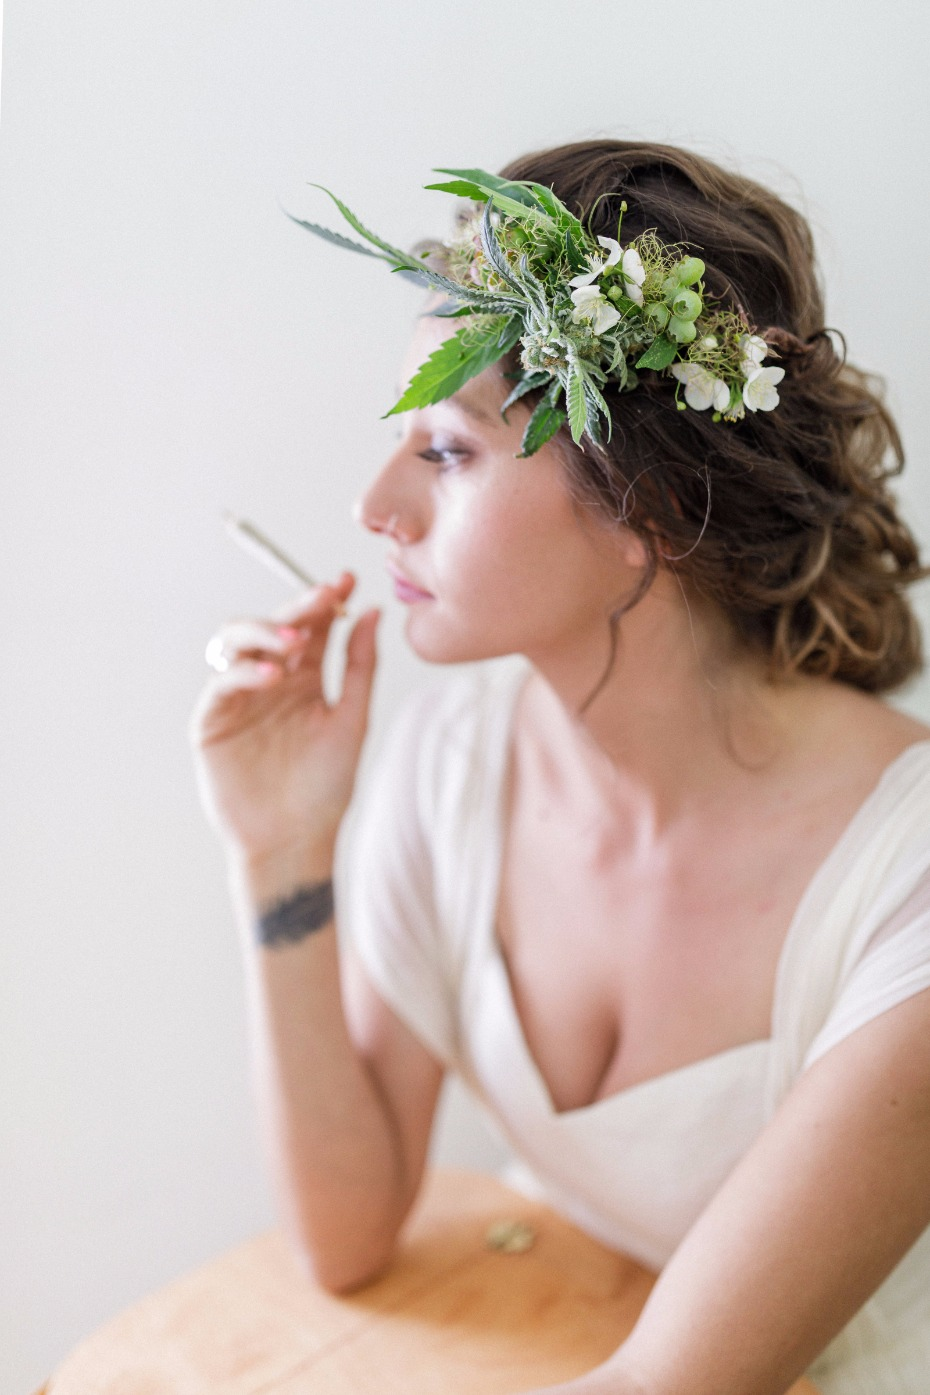 Cannabis floral crown